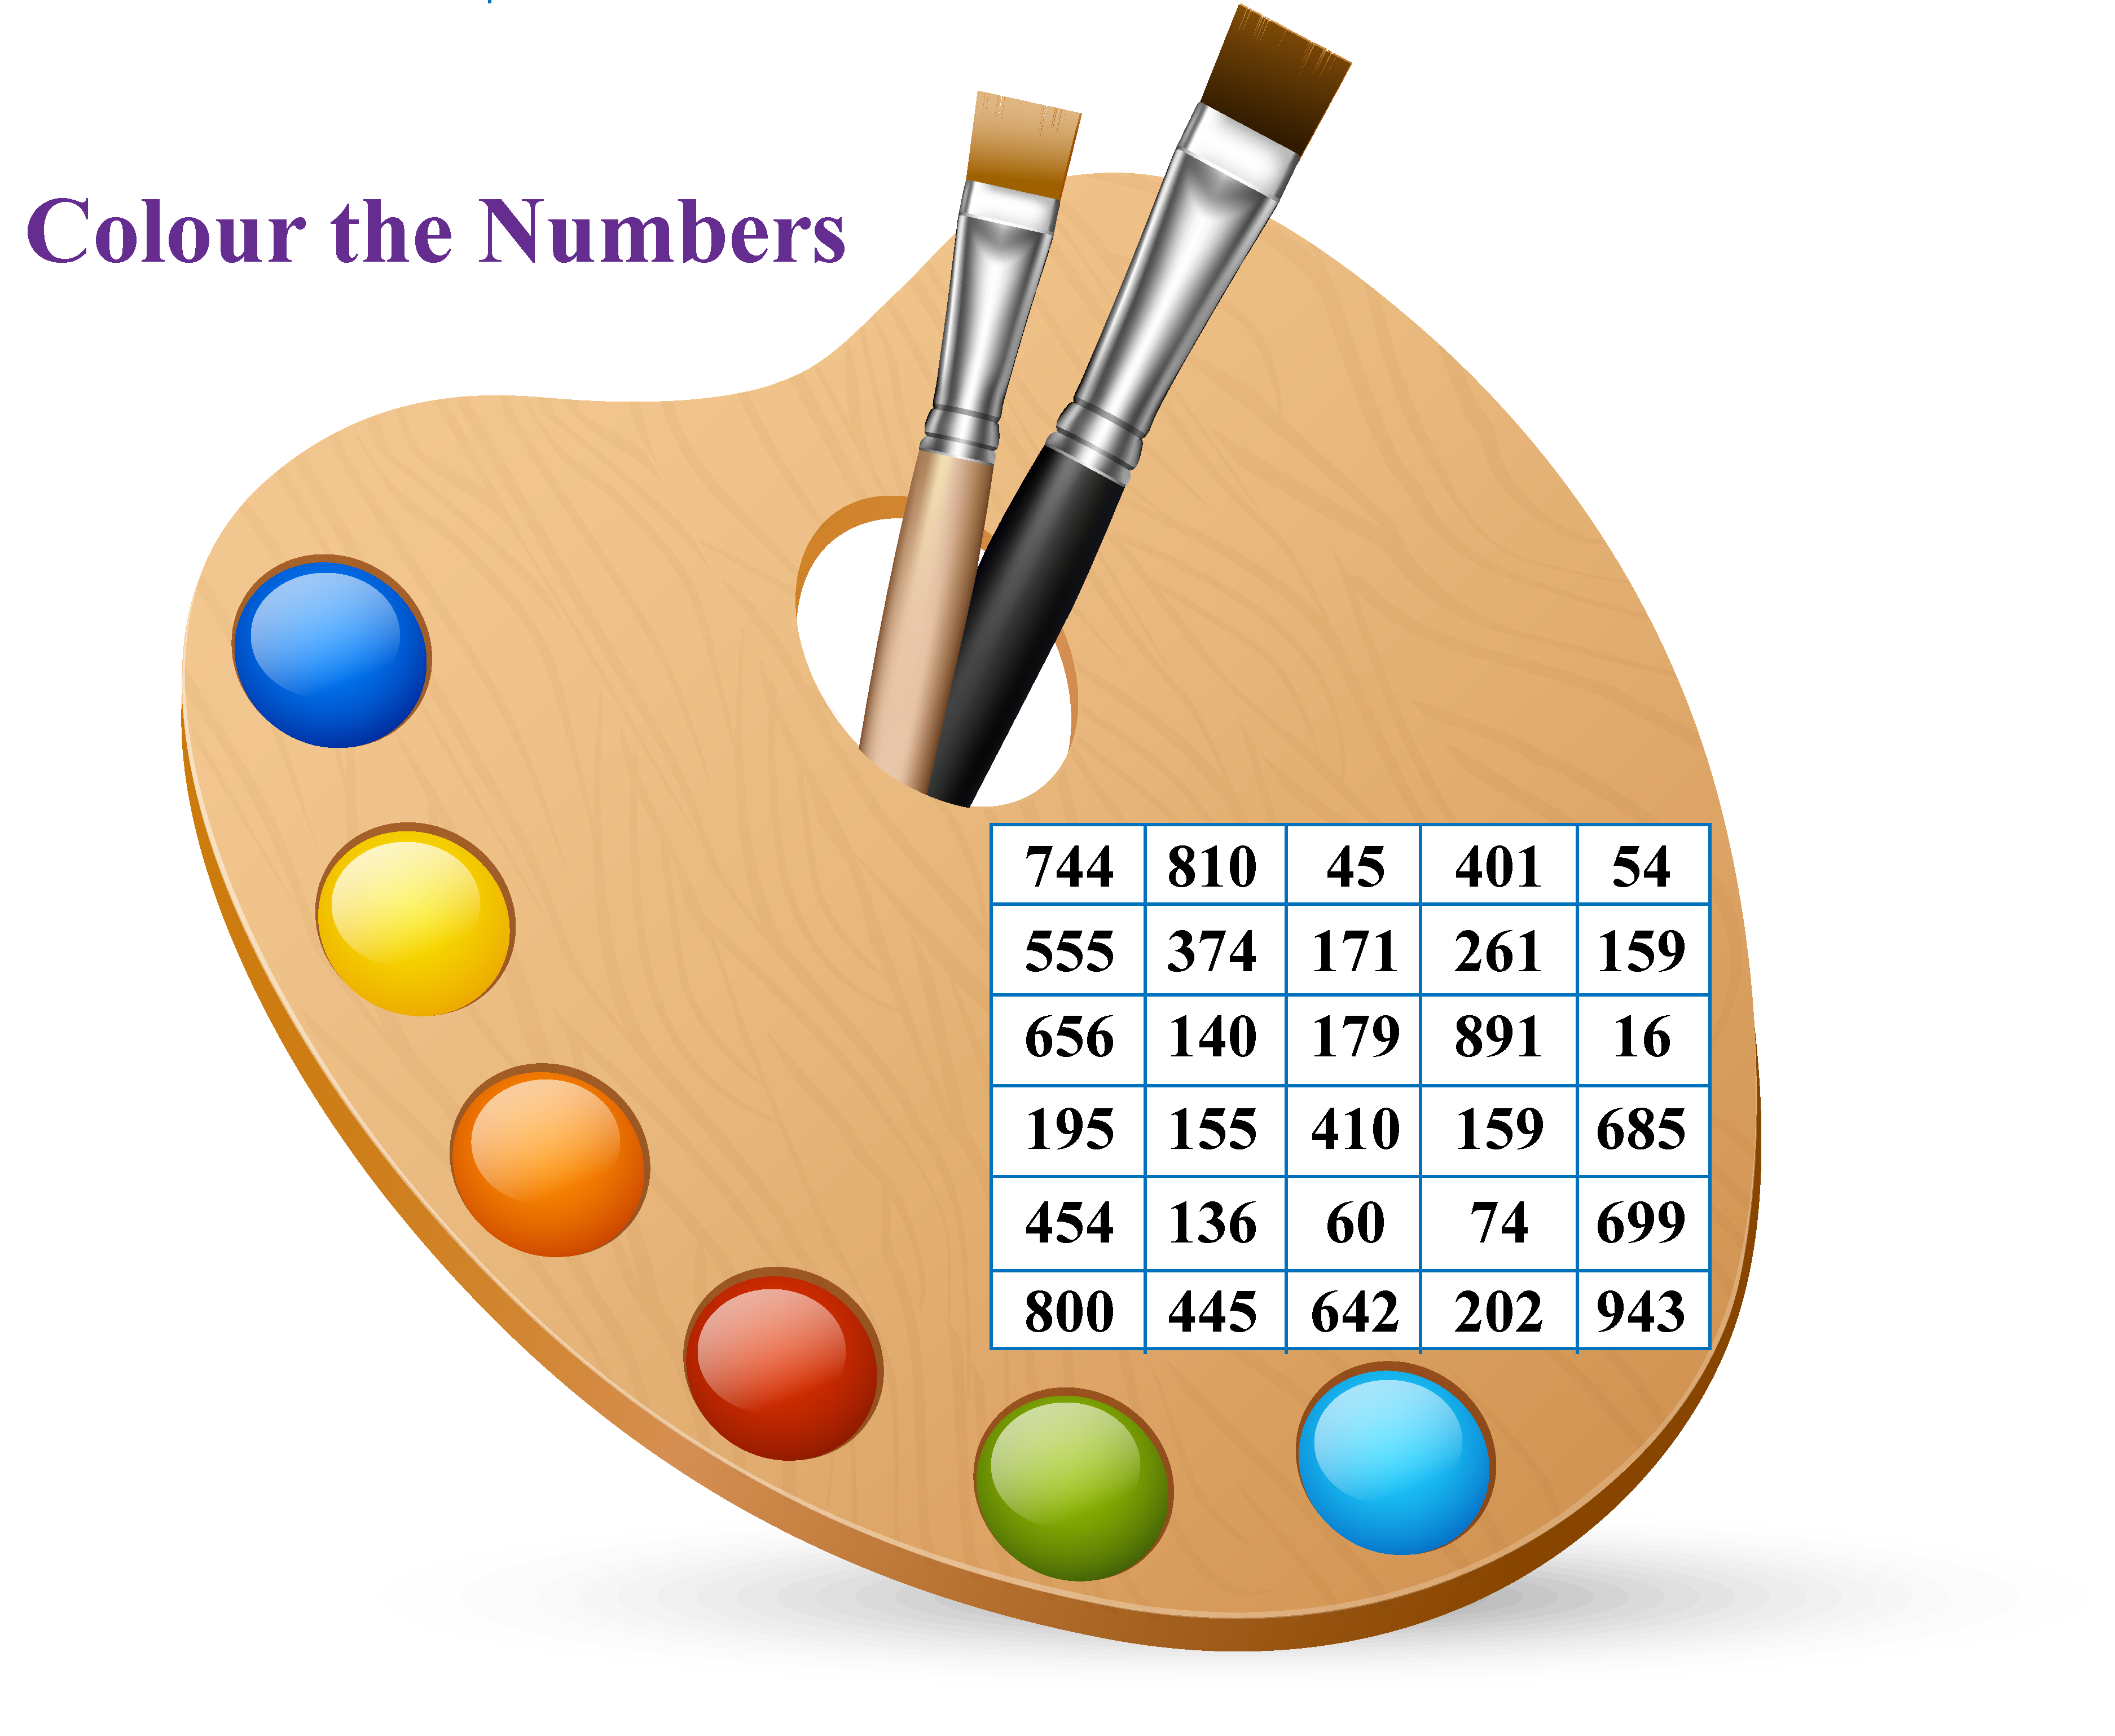 Practice numbers in words: Match the number names with the correct number given in the grid.